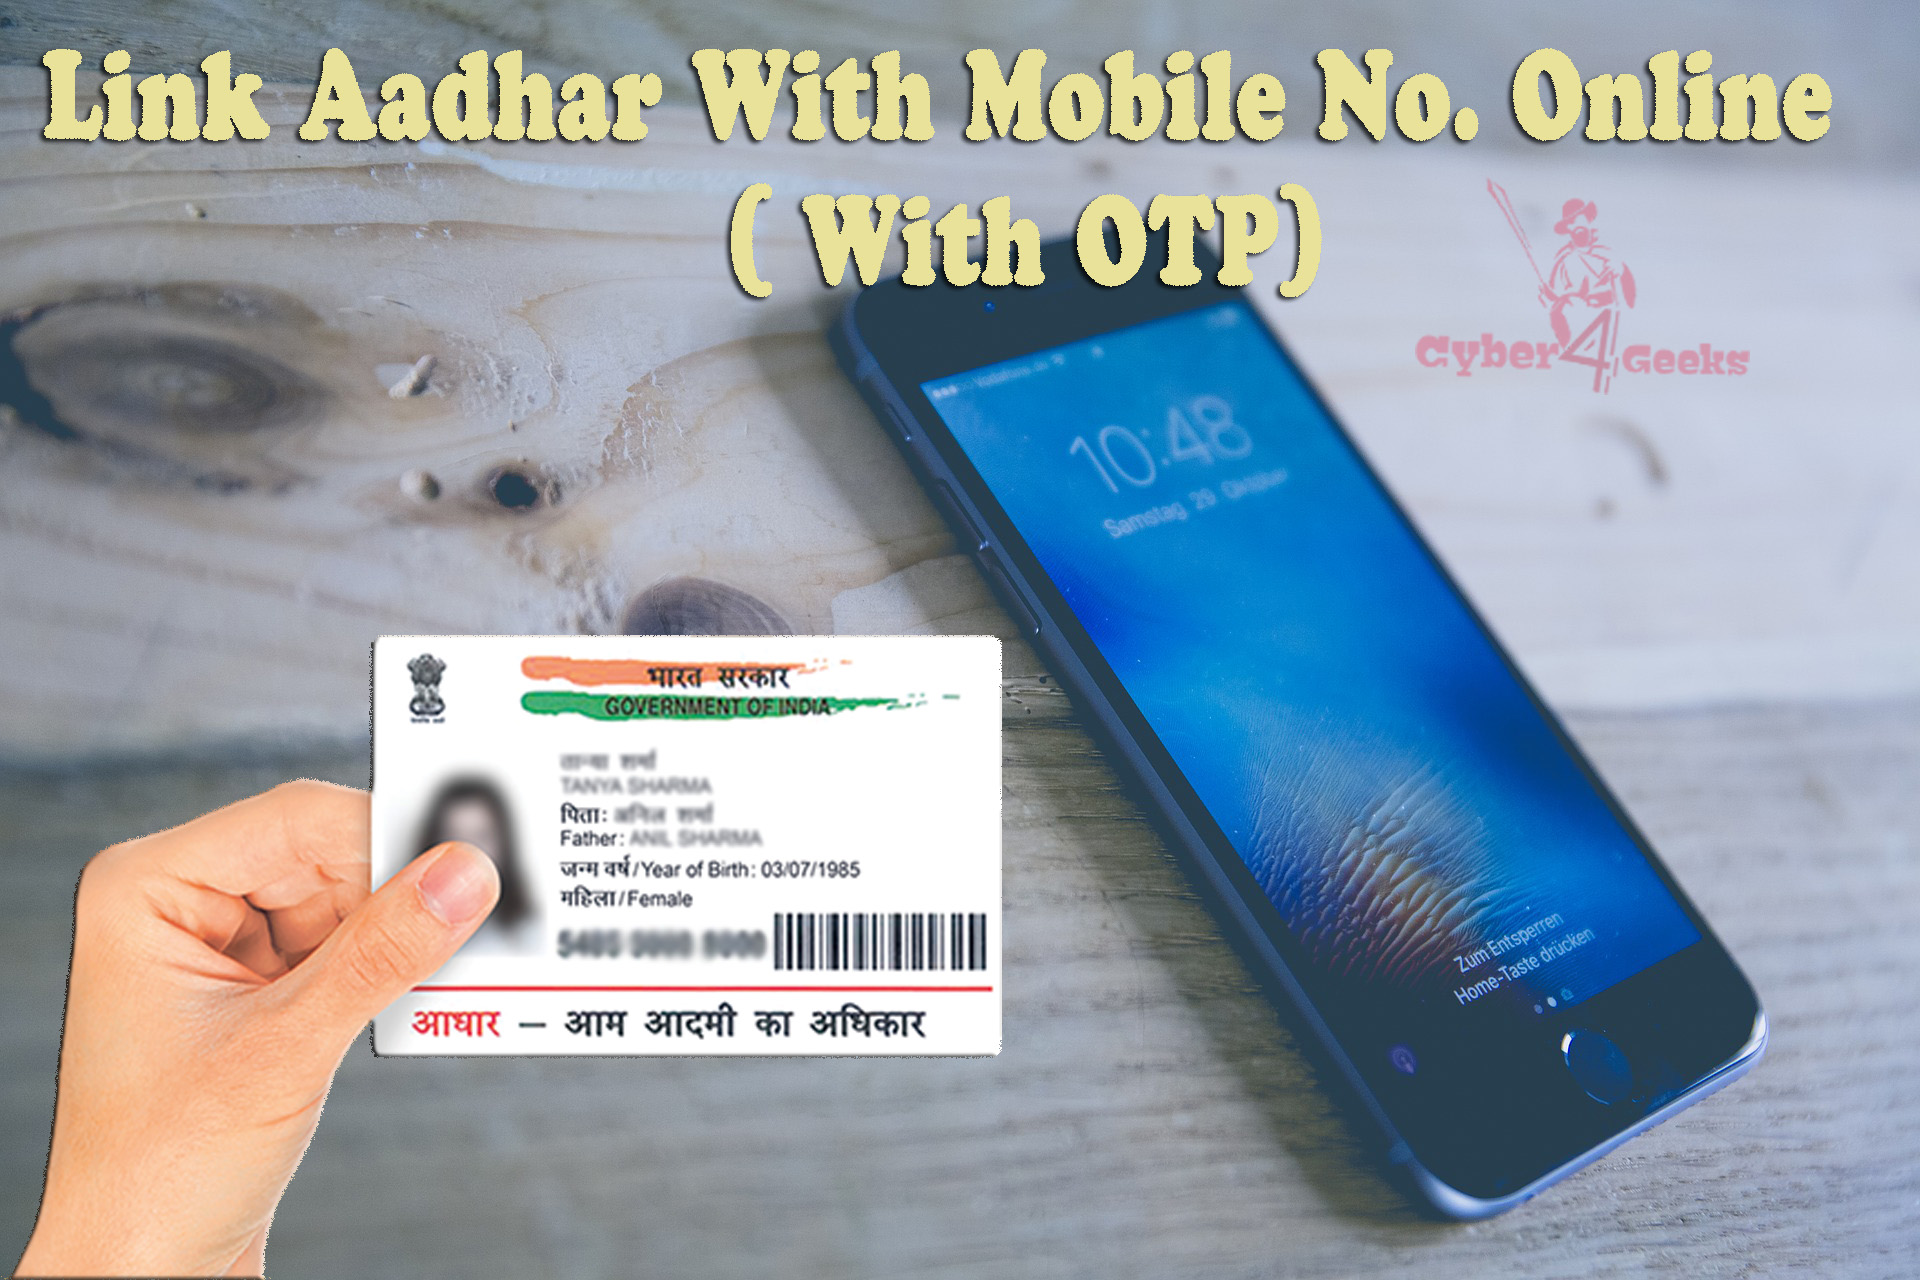 How To Link Aadhaar Card With Mobile Number  Online Using OTP